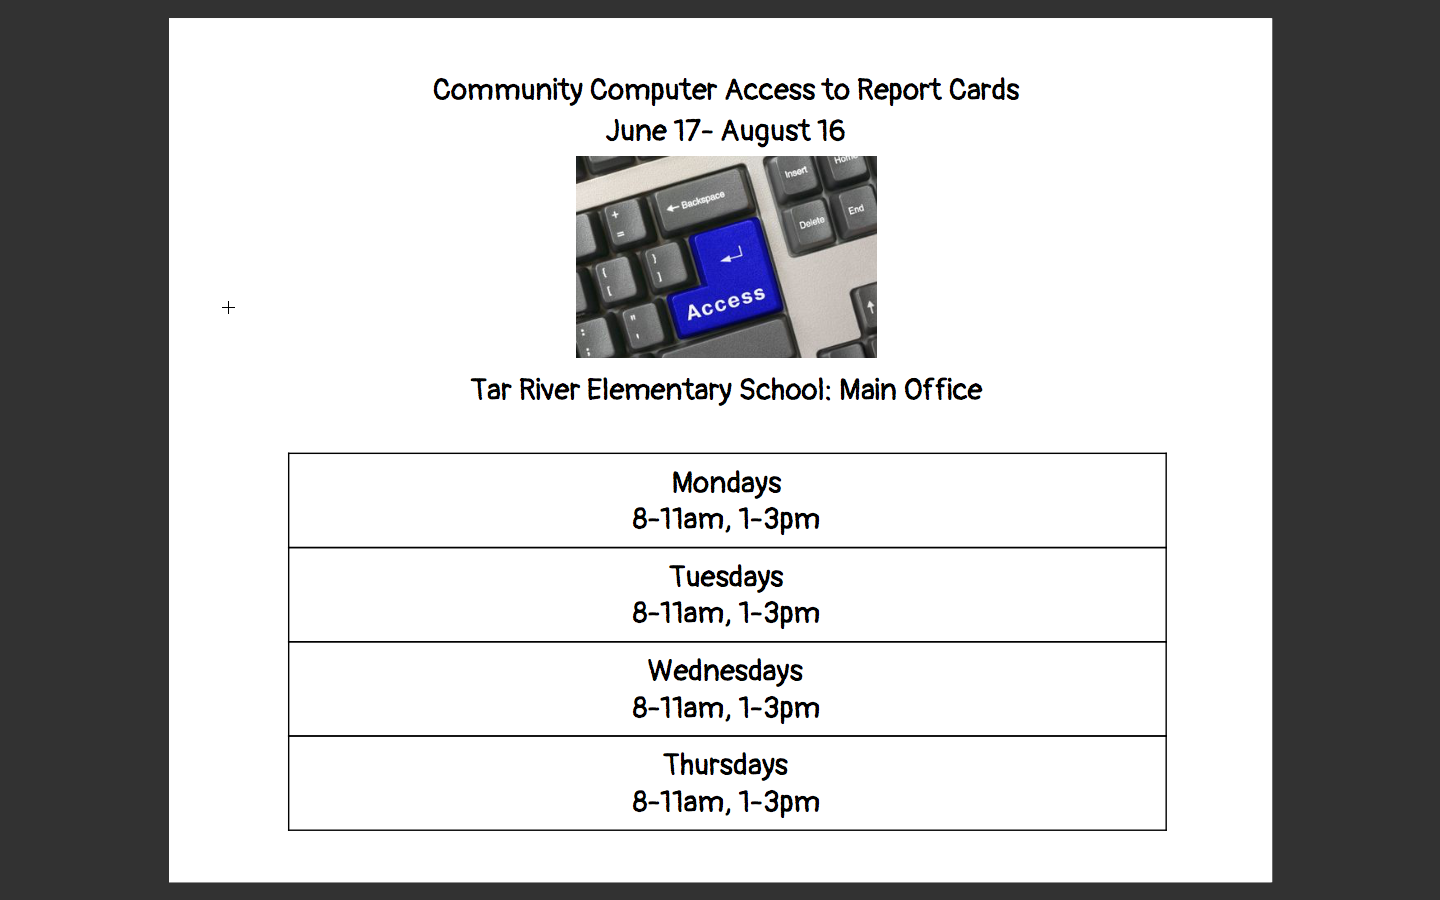 Community Computer Access to Report Cards